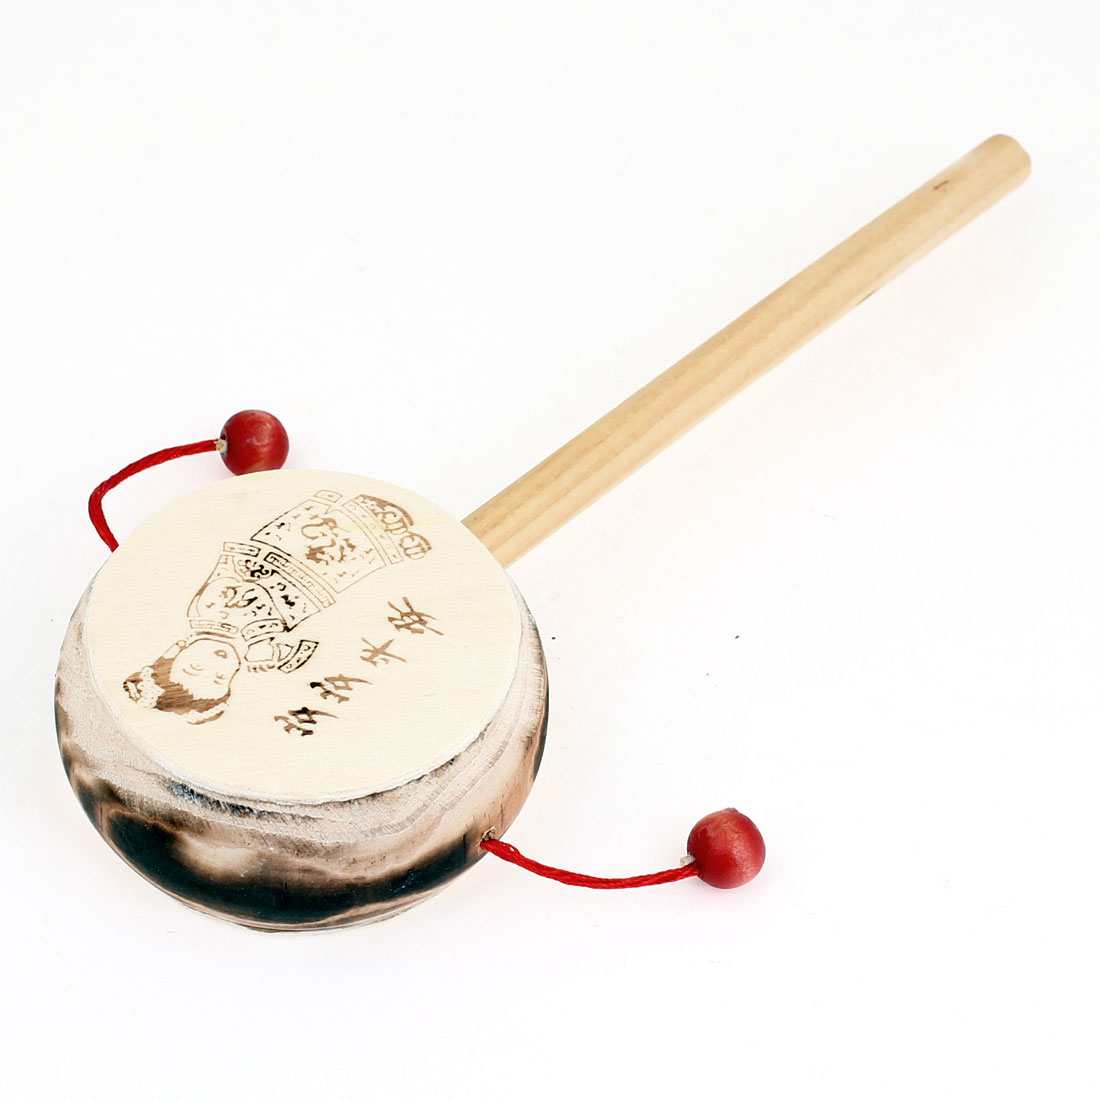 Rattling Rhythmic Wooden Rattle Drum Hand Shake Toy for Kid